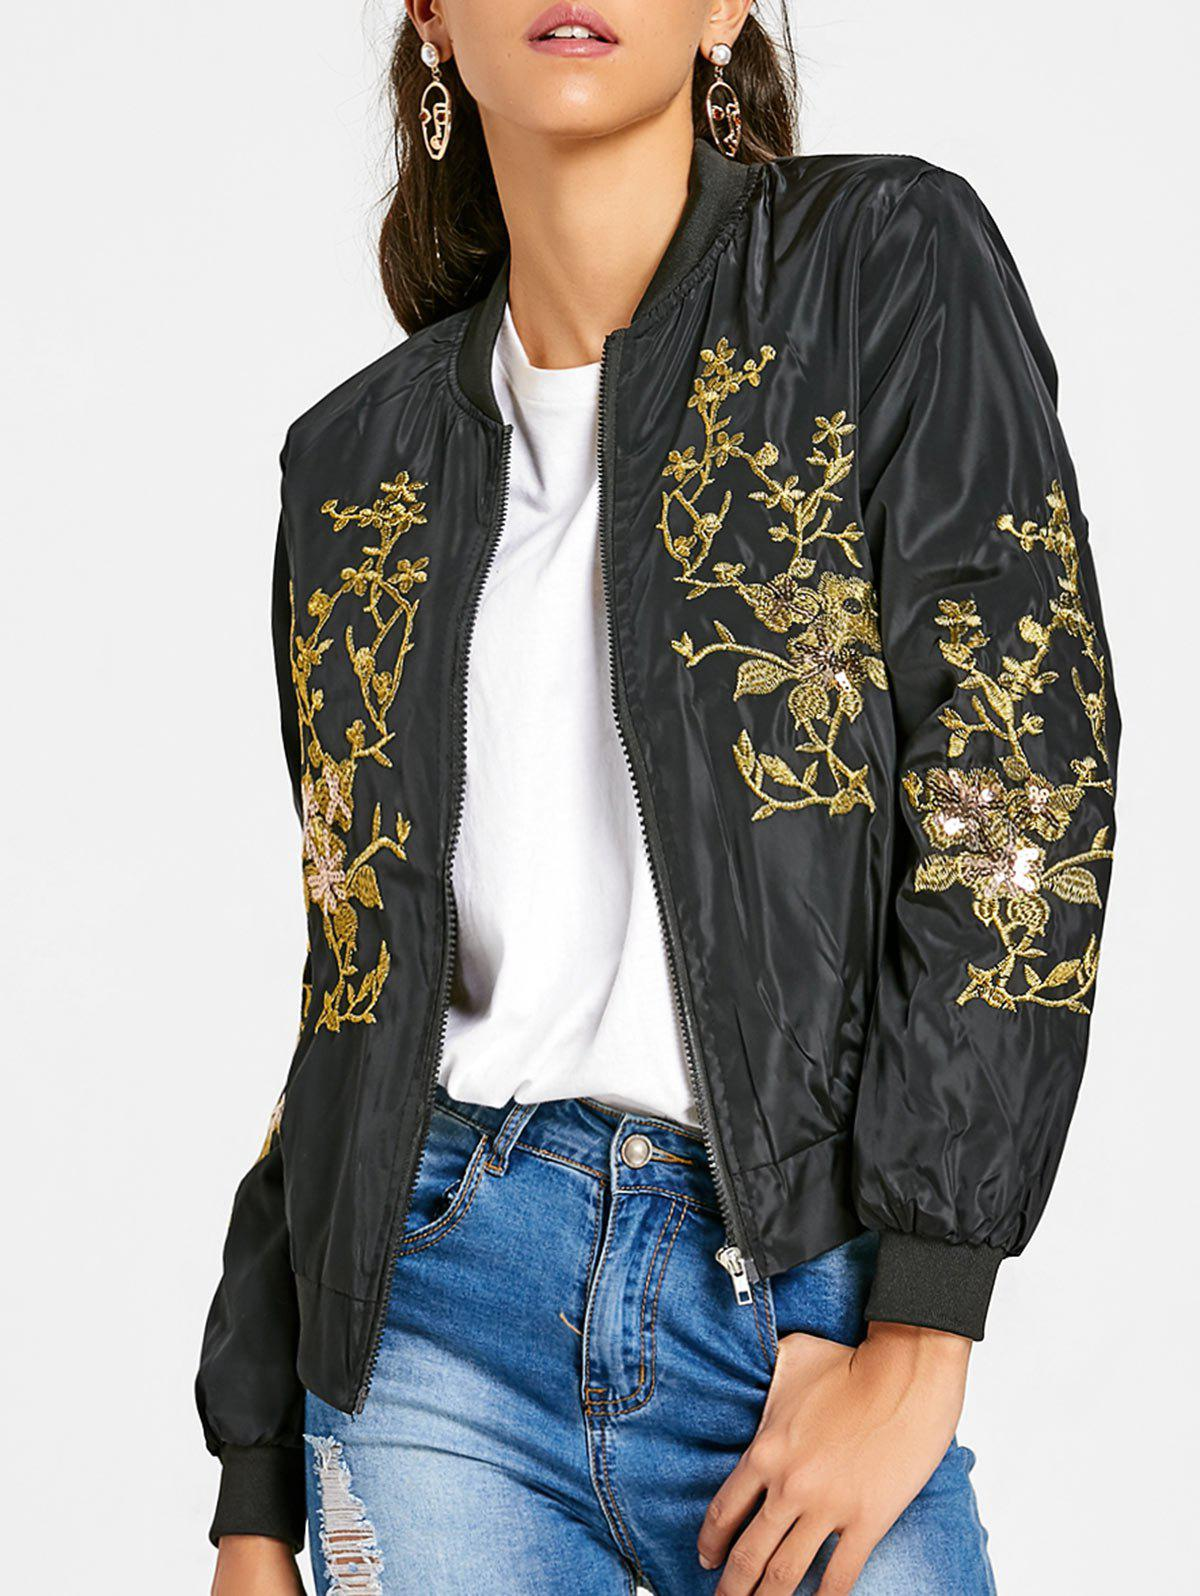 Sequin Embroidered Zip Up Jacket sequin embroidered zip up jacket page 1